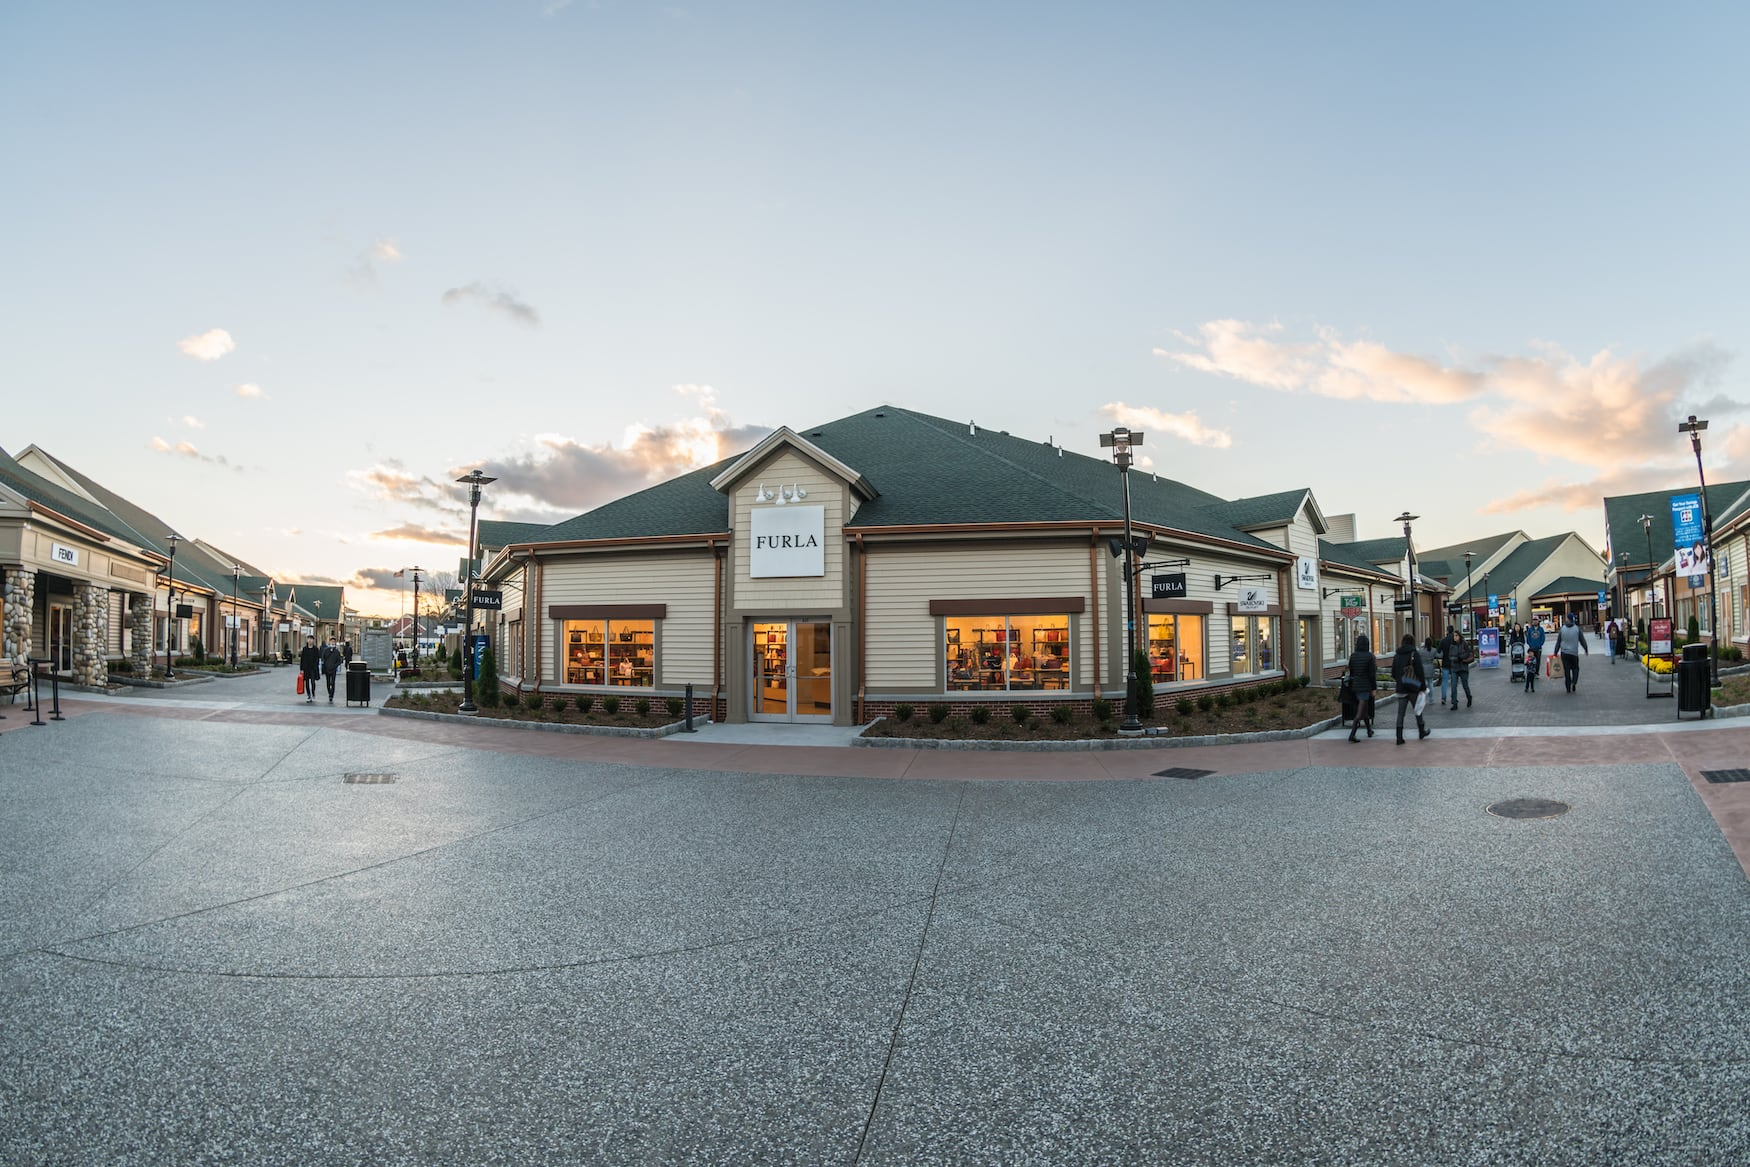 Woodbury Common Premium Outlet: Luxusmarken-Stores wie Fula, Prada etc